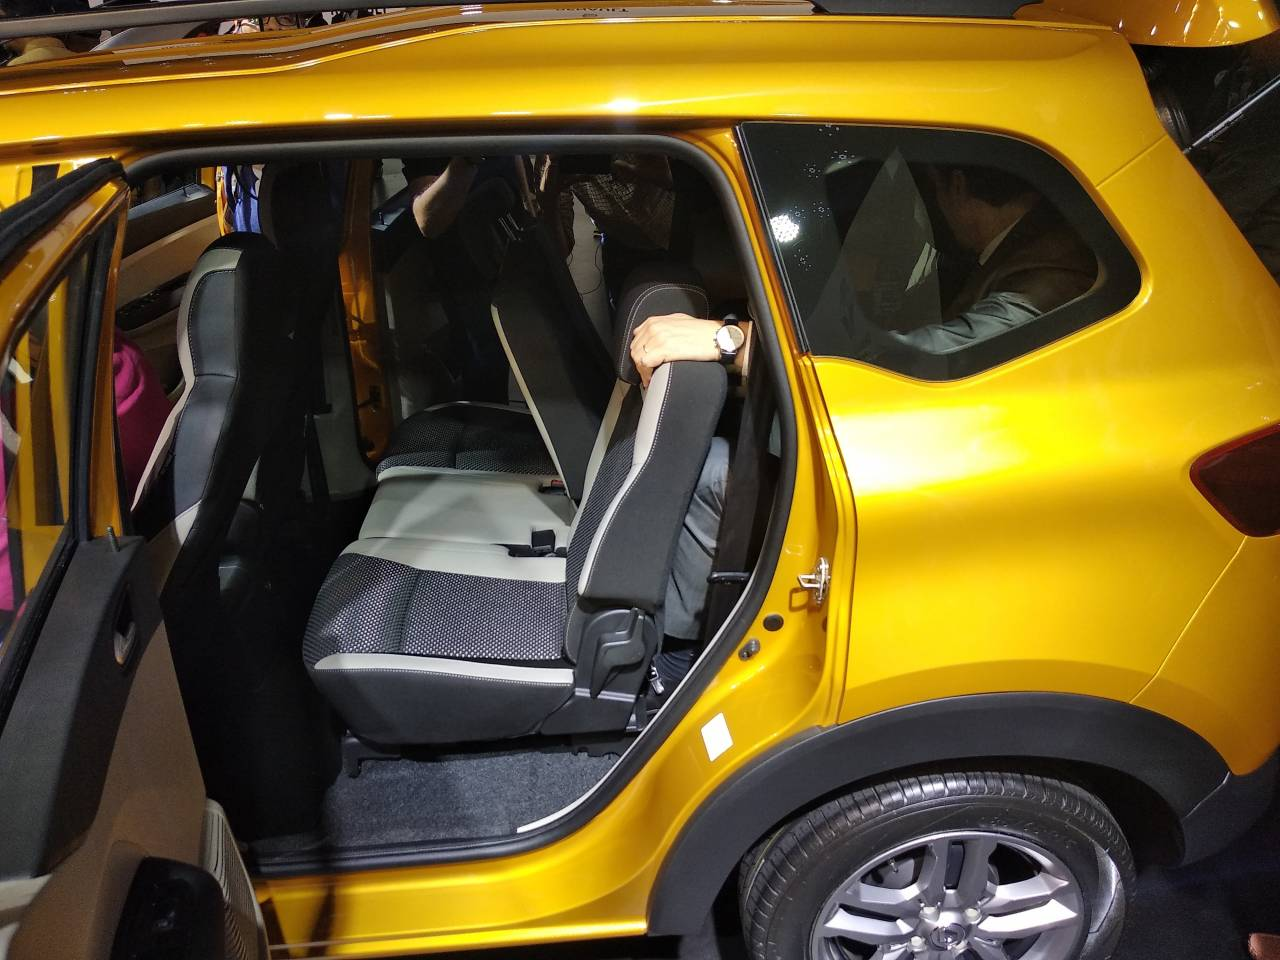 Triber gets sliding, recliable, foldable and tumble second row seats. The EasyFix seats allows for easy handling and removal of third row independent seats. Boot capacity remains 320 litres in six-seater configuration and 84 litre in seven seater configuration. In the five seating configuration the Triber gets a massive 625 litre space. (Image: Moneycontrol)